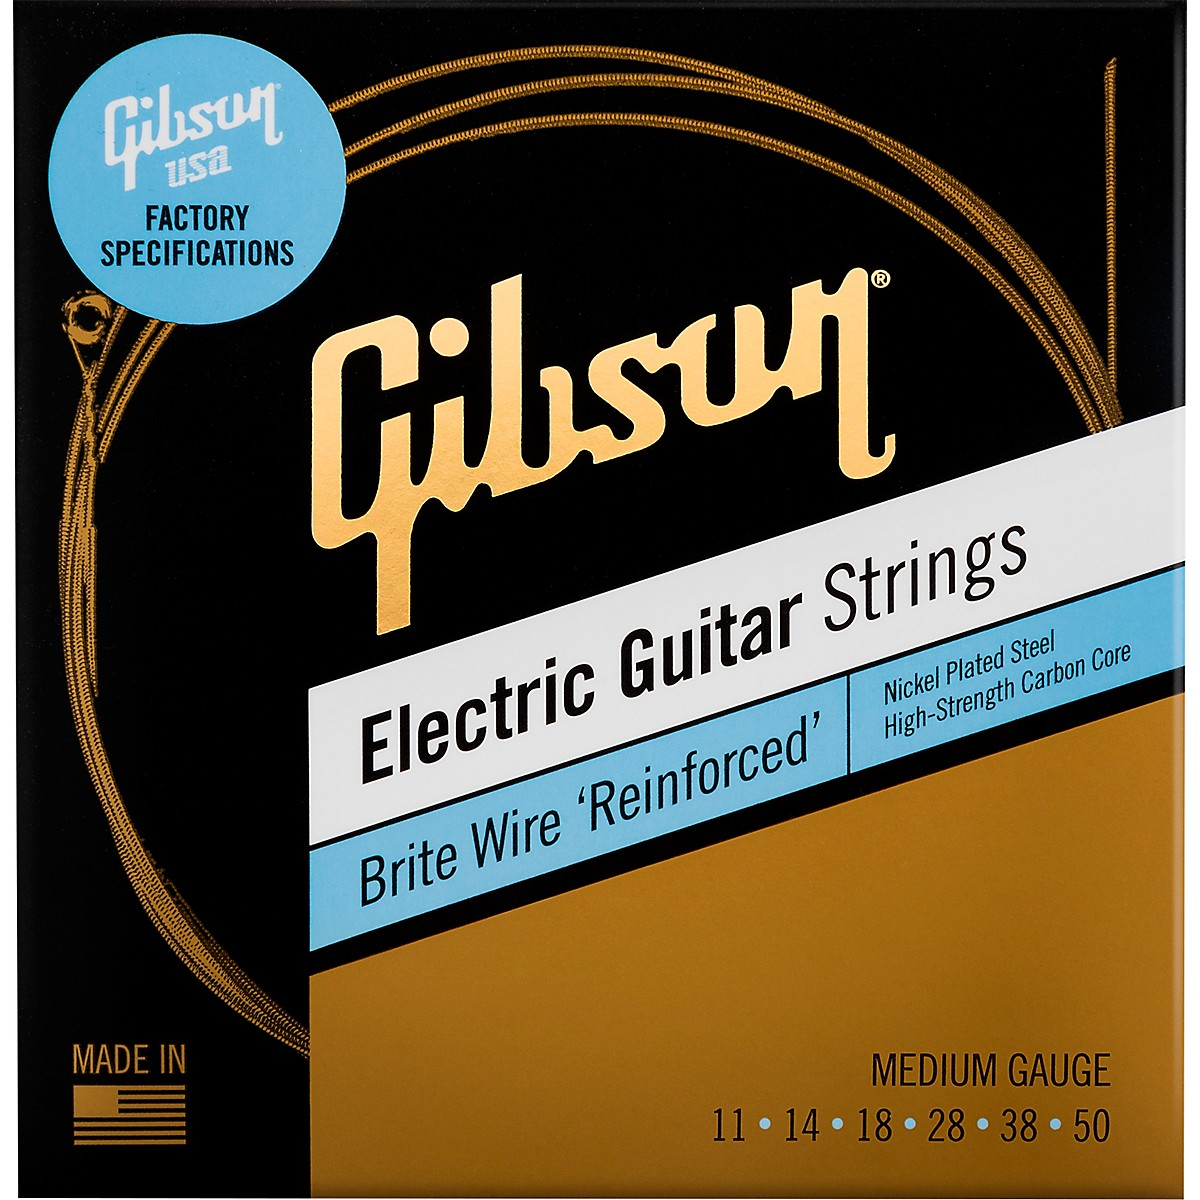 Gibson Brite Wire 'Reinforced' Electric Guitar Strings, Medium Gauge